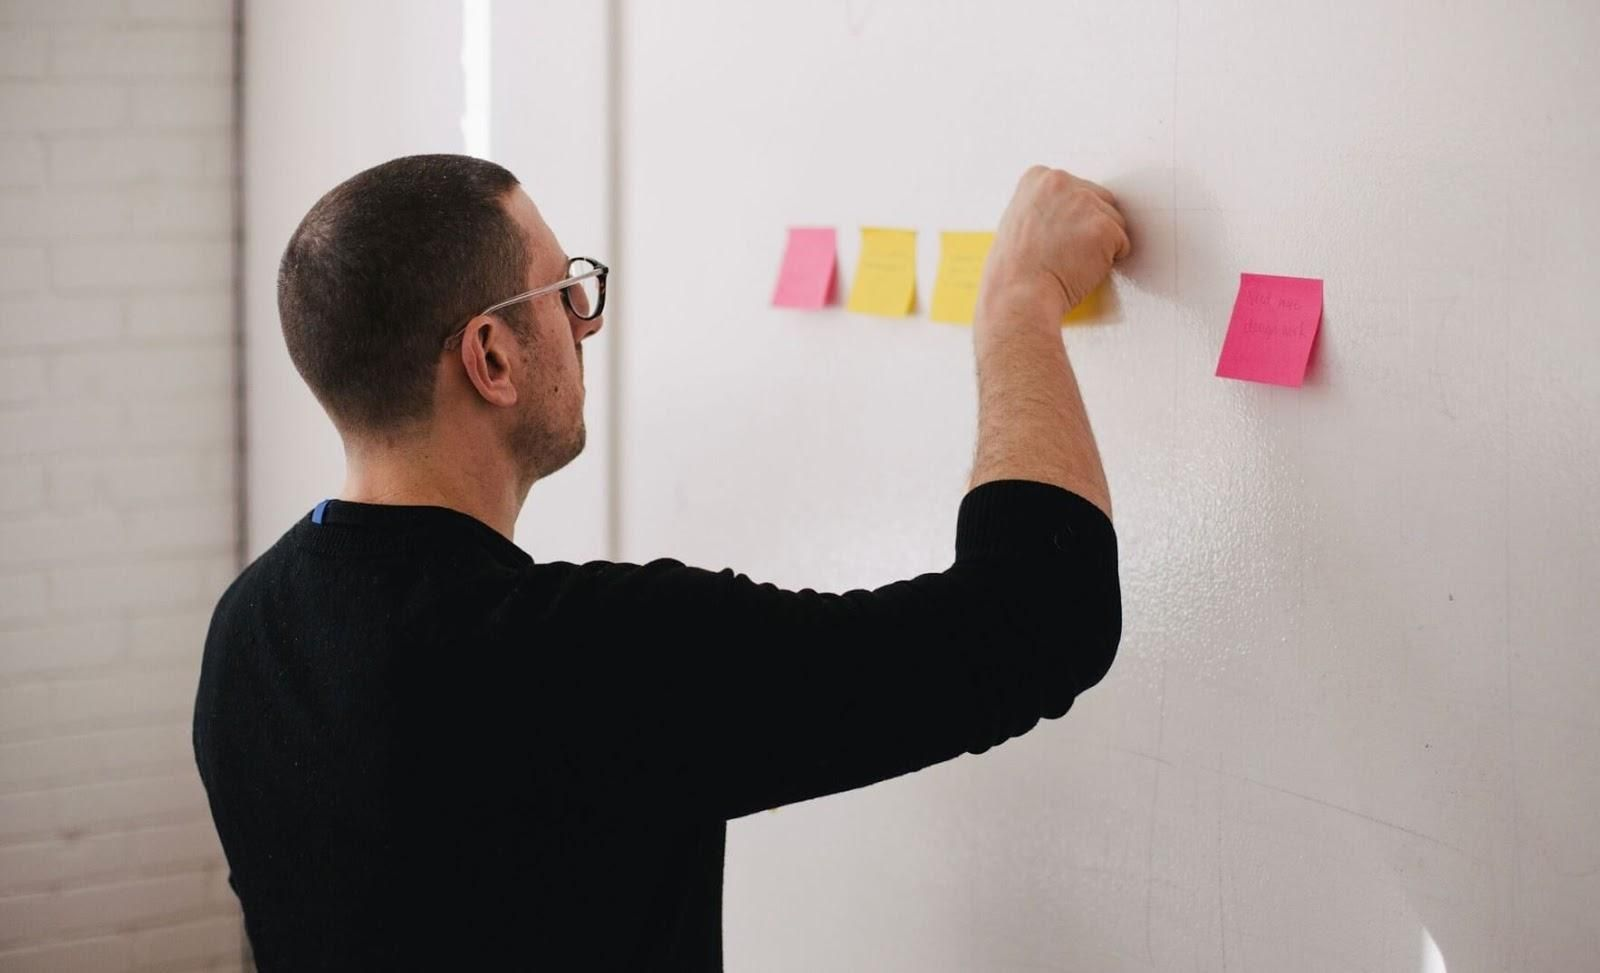 Picture of man sticking sticky notes on a wall